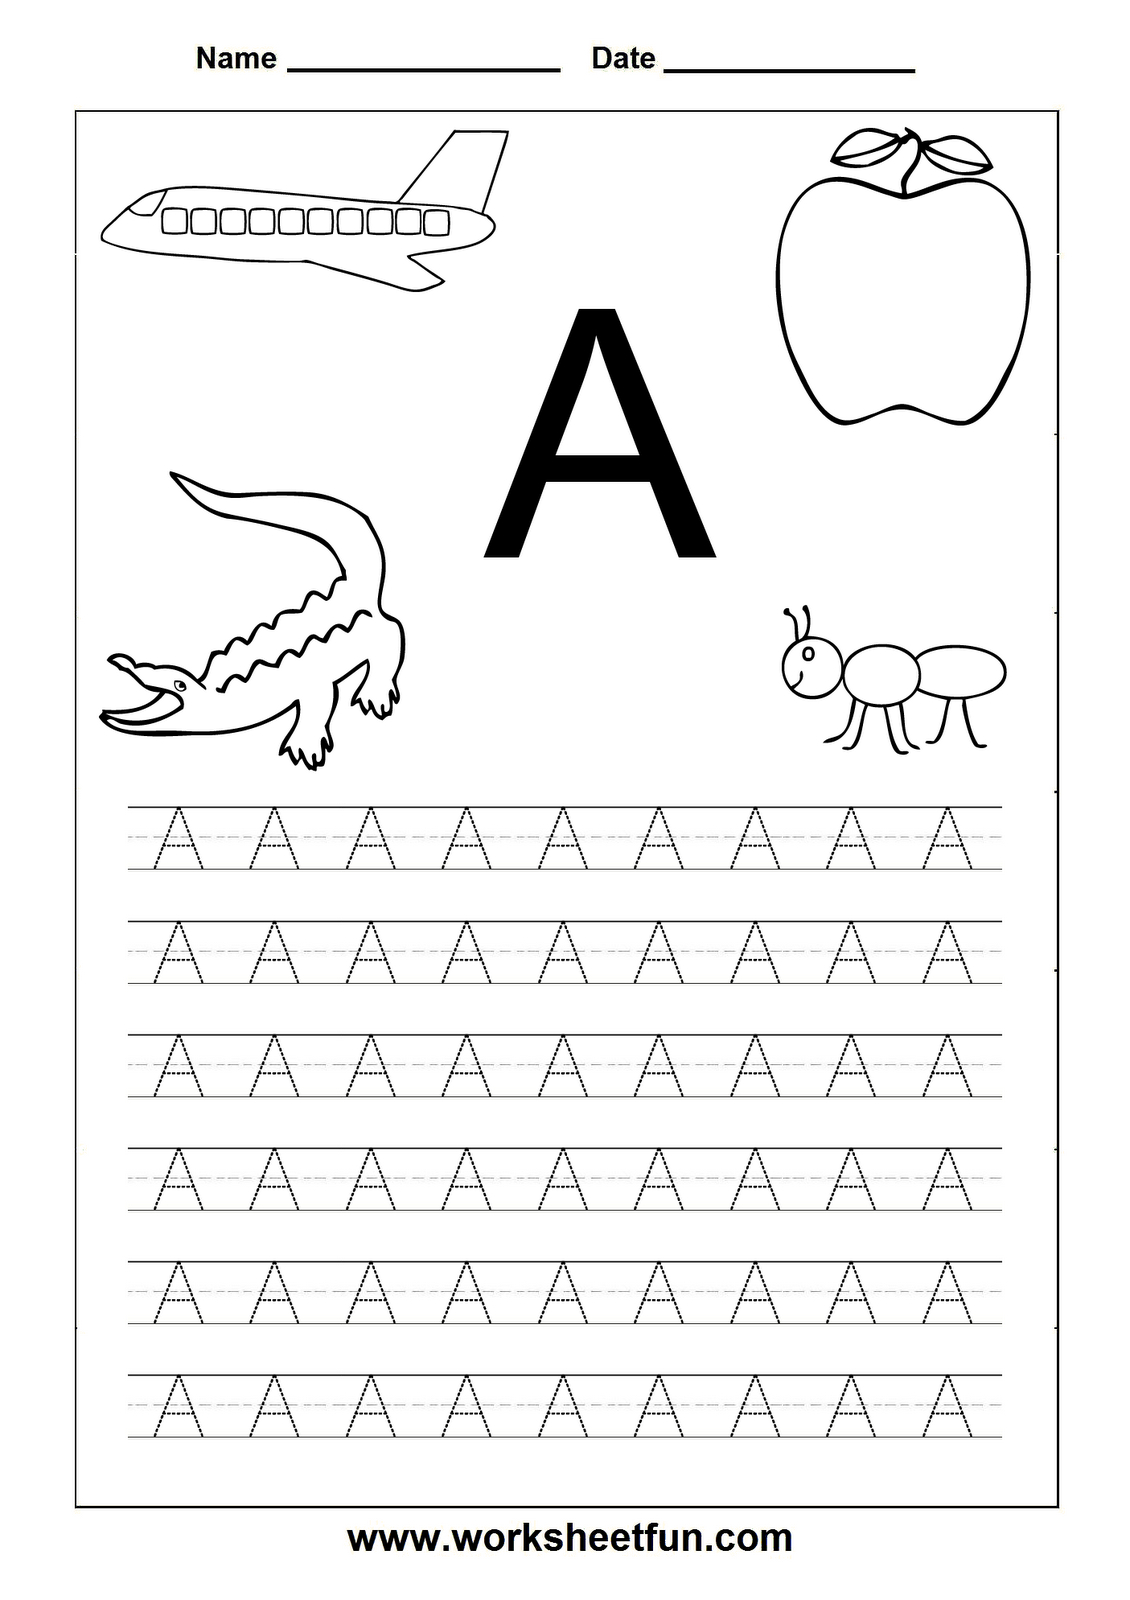 Letter Worksheets For Kindergarten Printable | Tracing intended for Alphabet Worksheets Kindergarten Printable